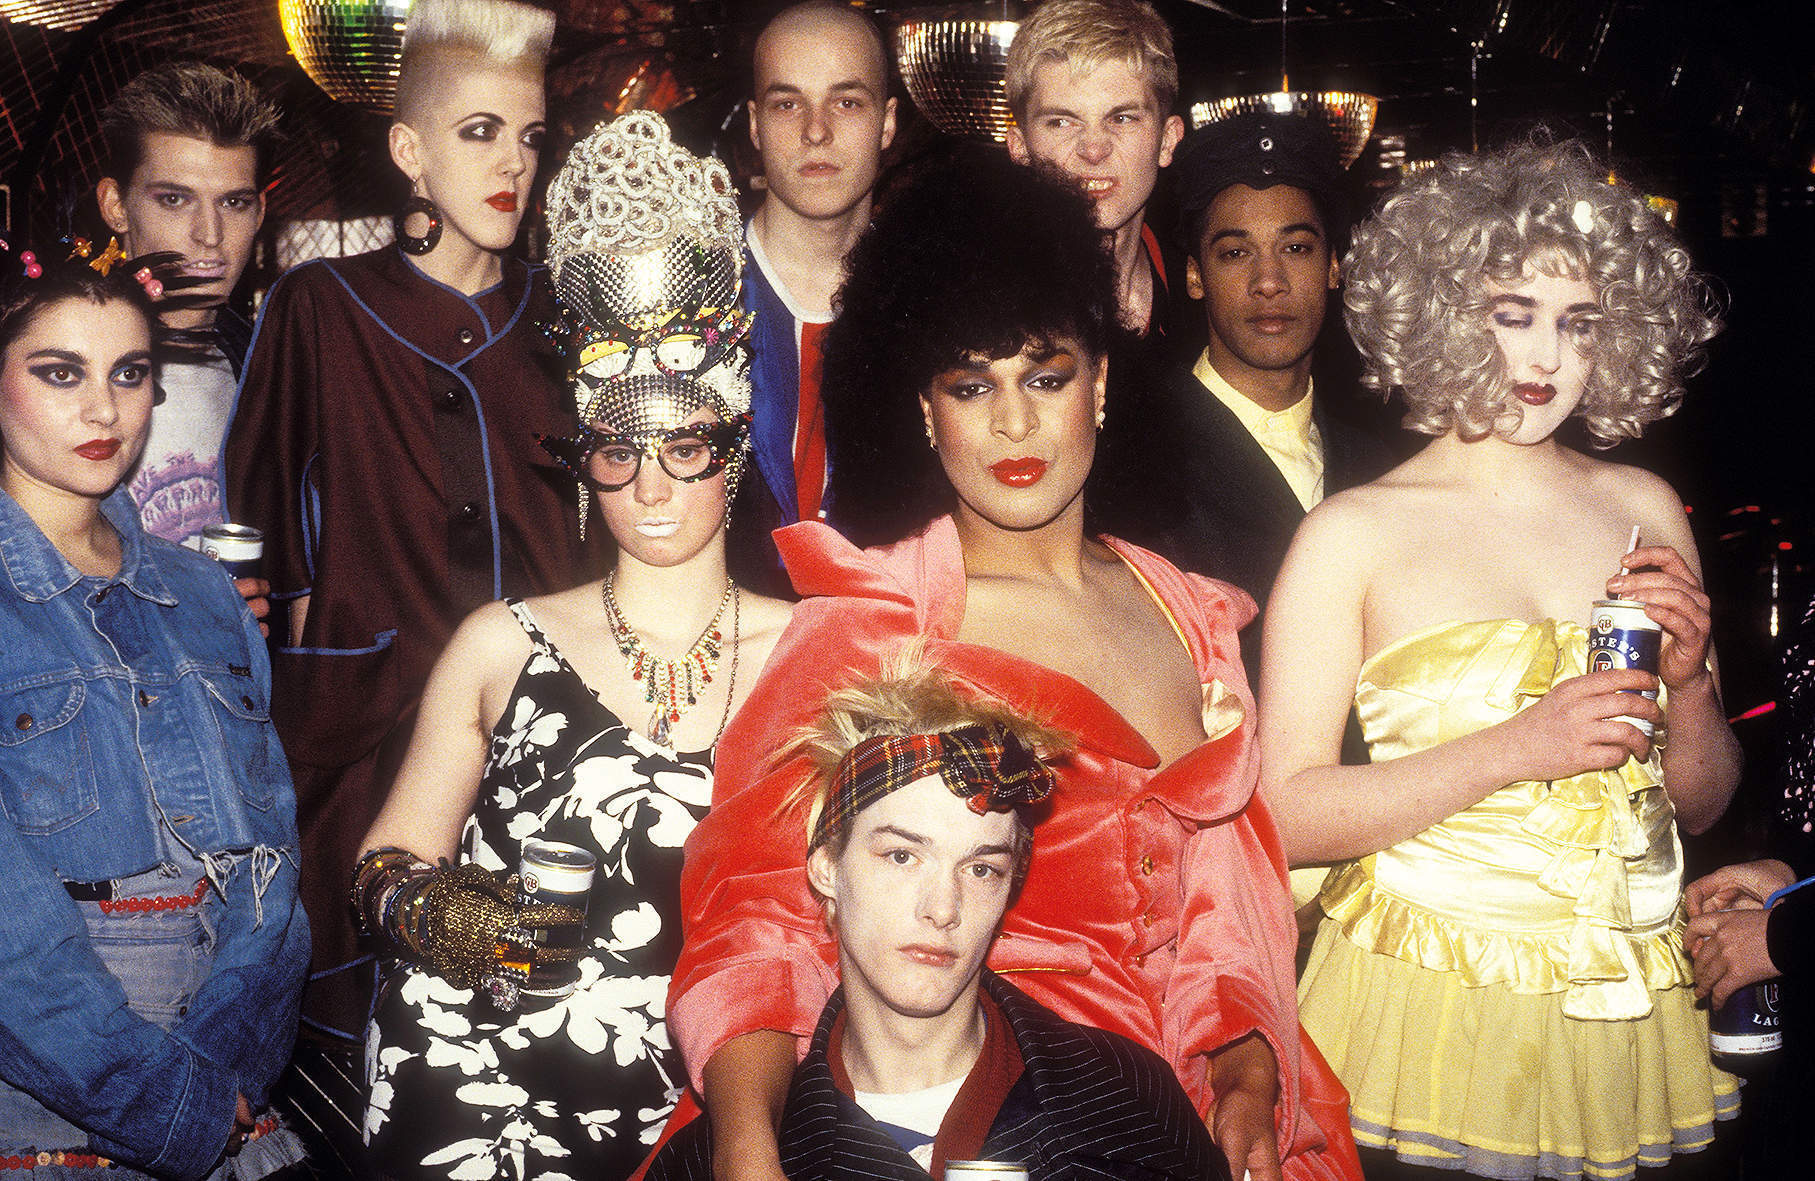 Queer City reveals a long tradition of gender-fluid Londoners